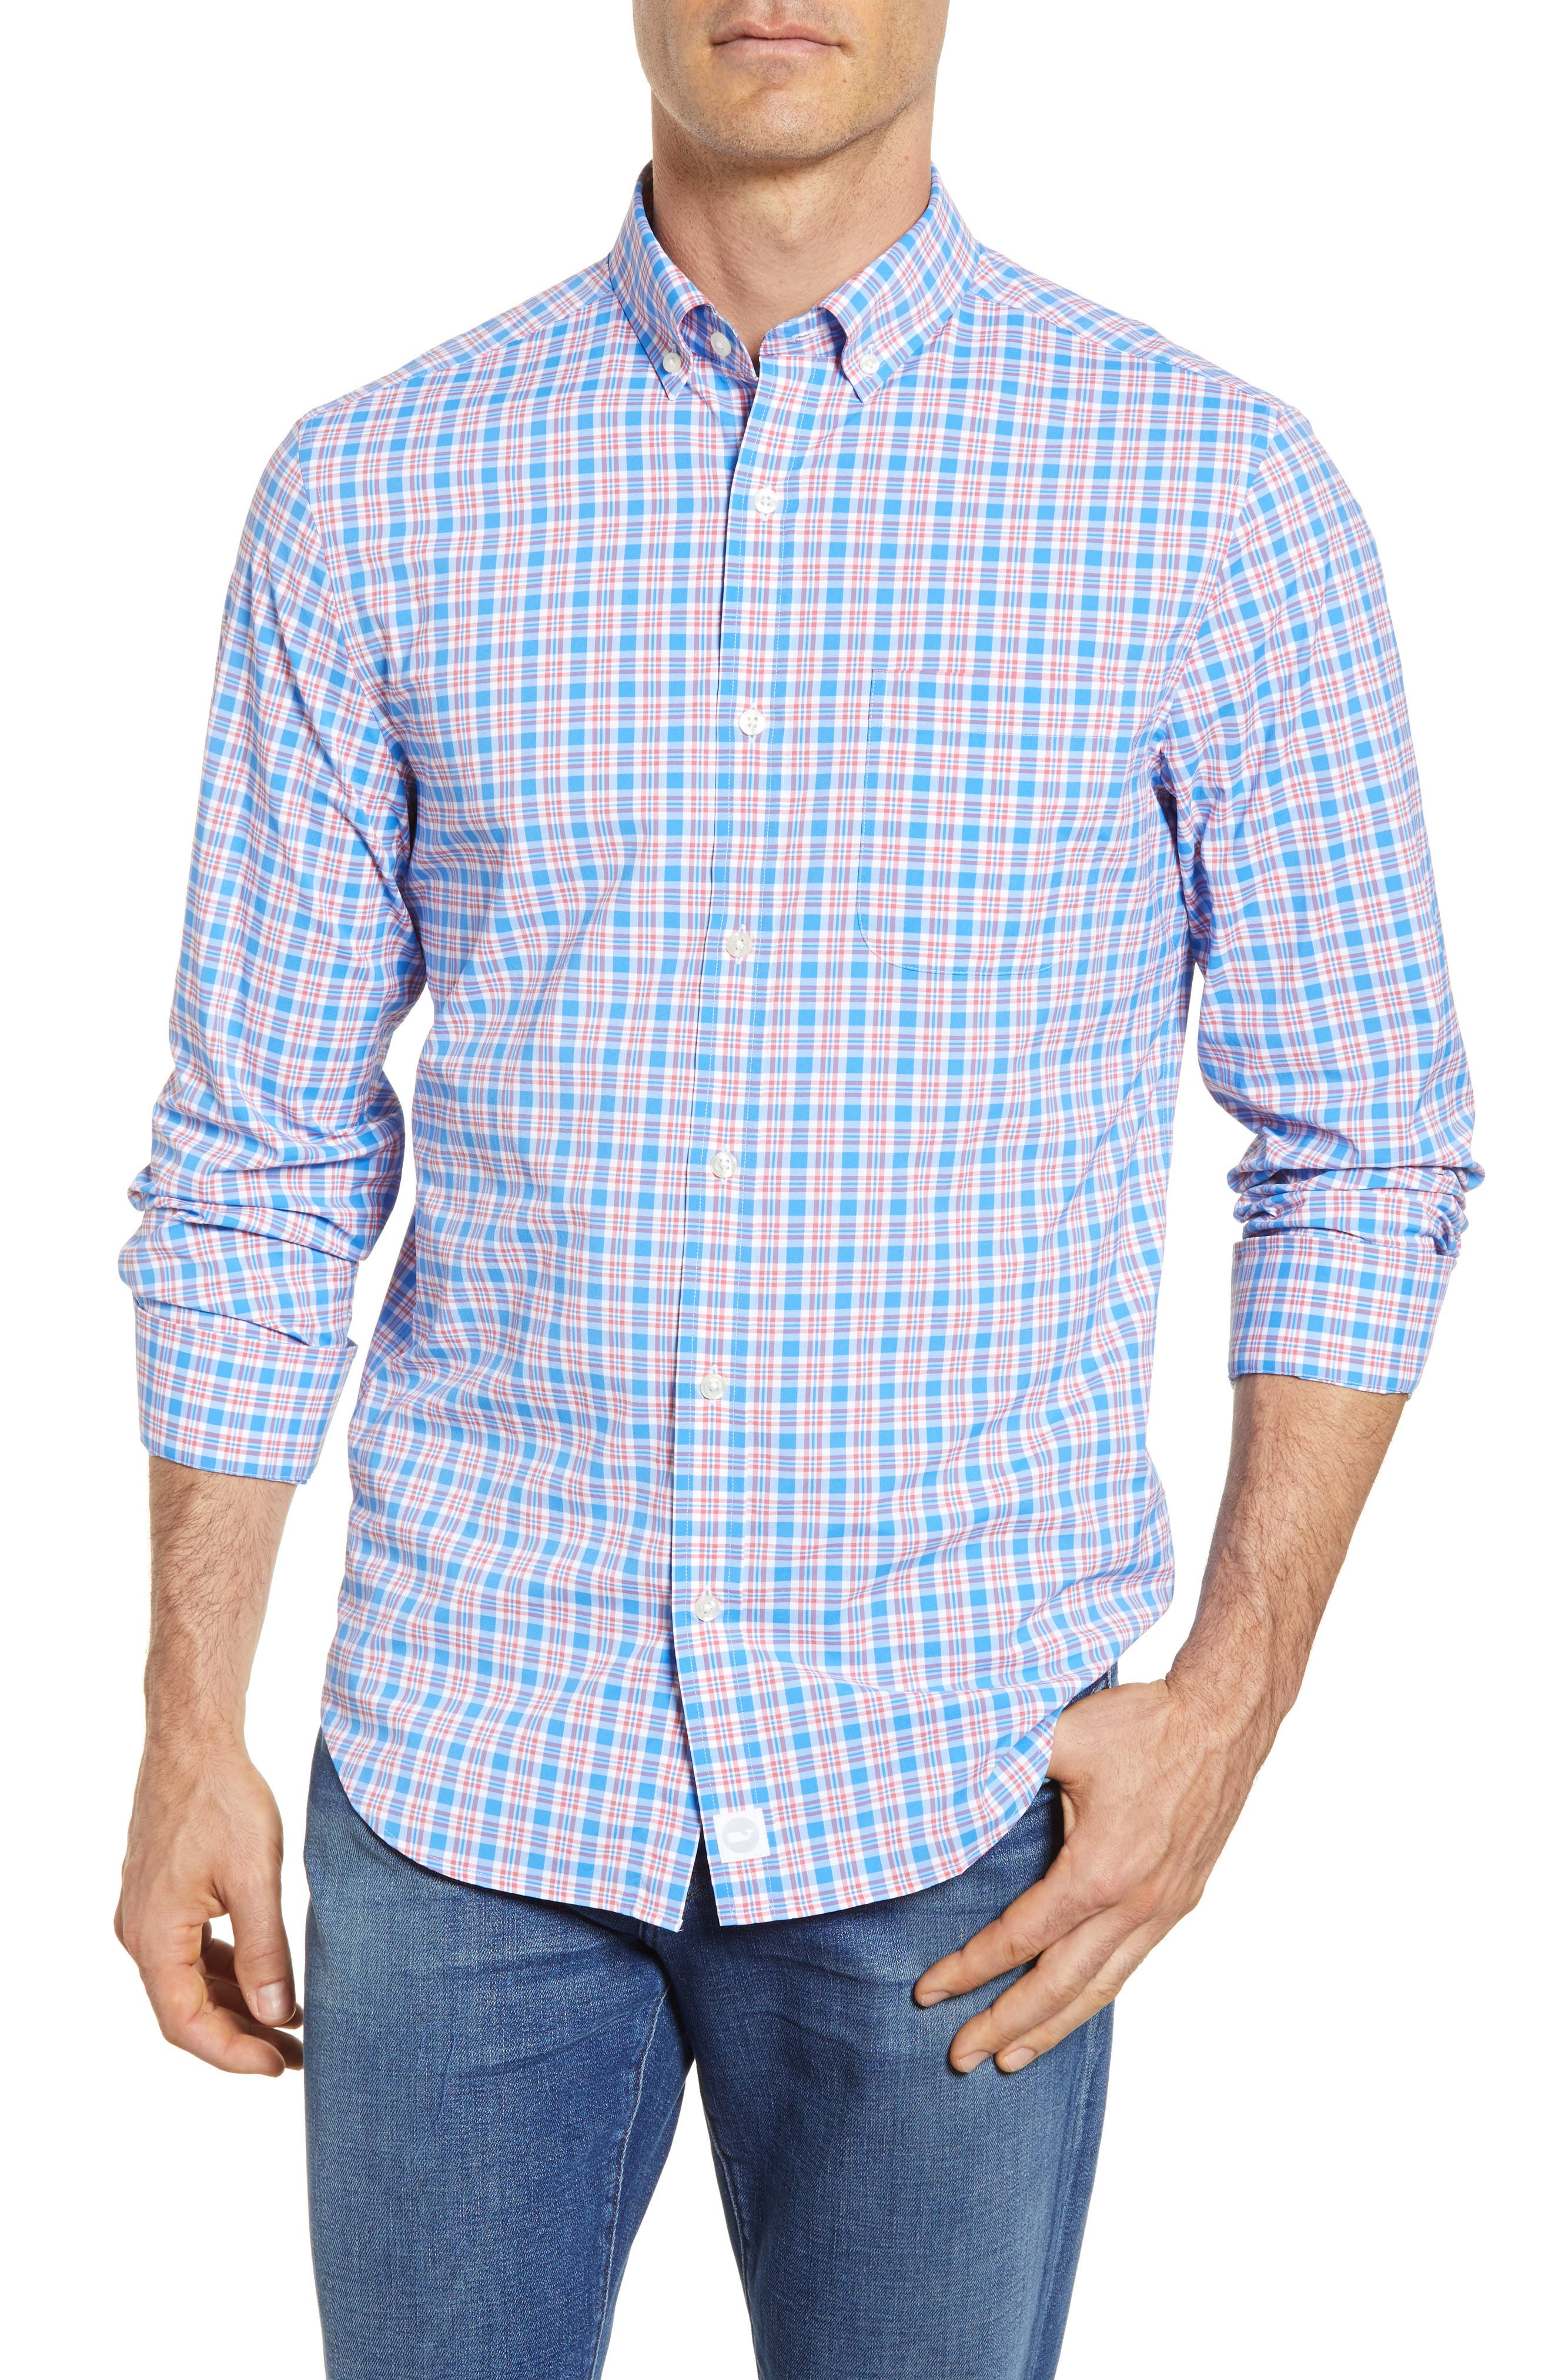 Lighthouse Road Regular Fit Plaid Sport Shirt,                             Main thumbnail 1, color,                             415